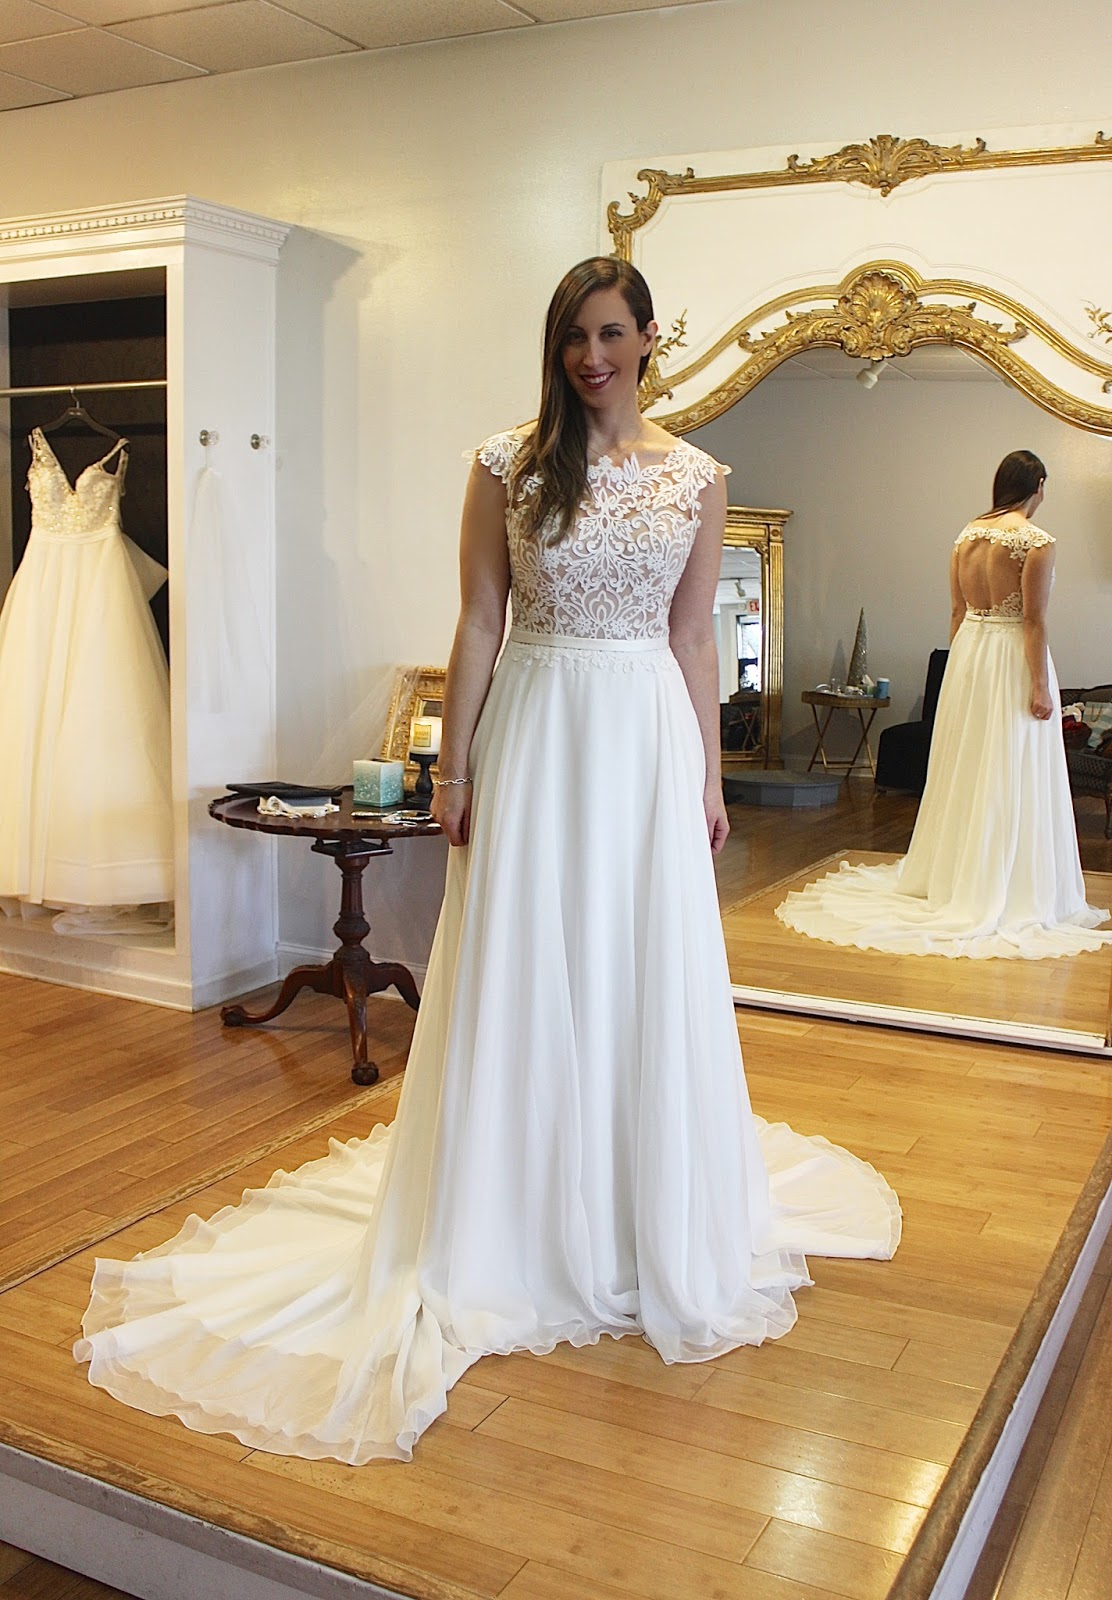 Wedding Gown Shopping with I Do I Do | FASHinNY